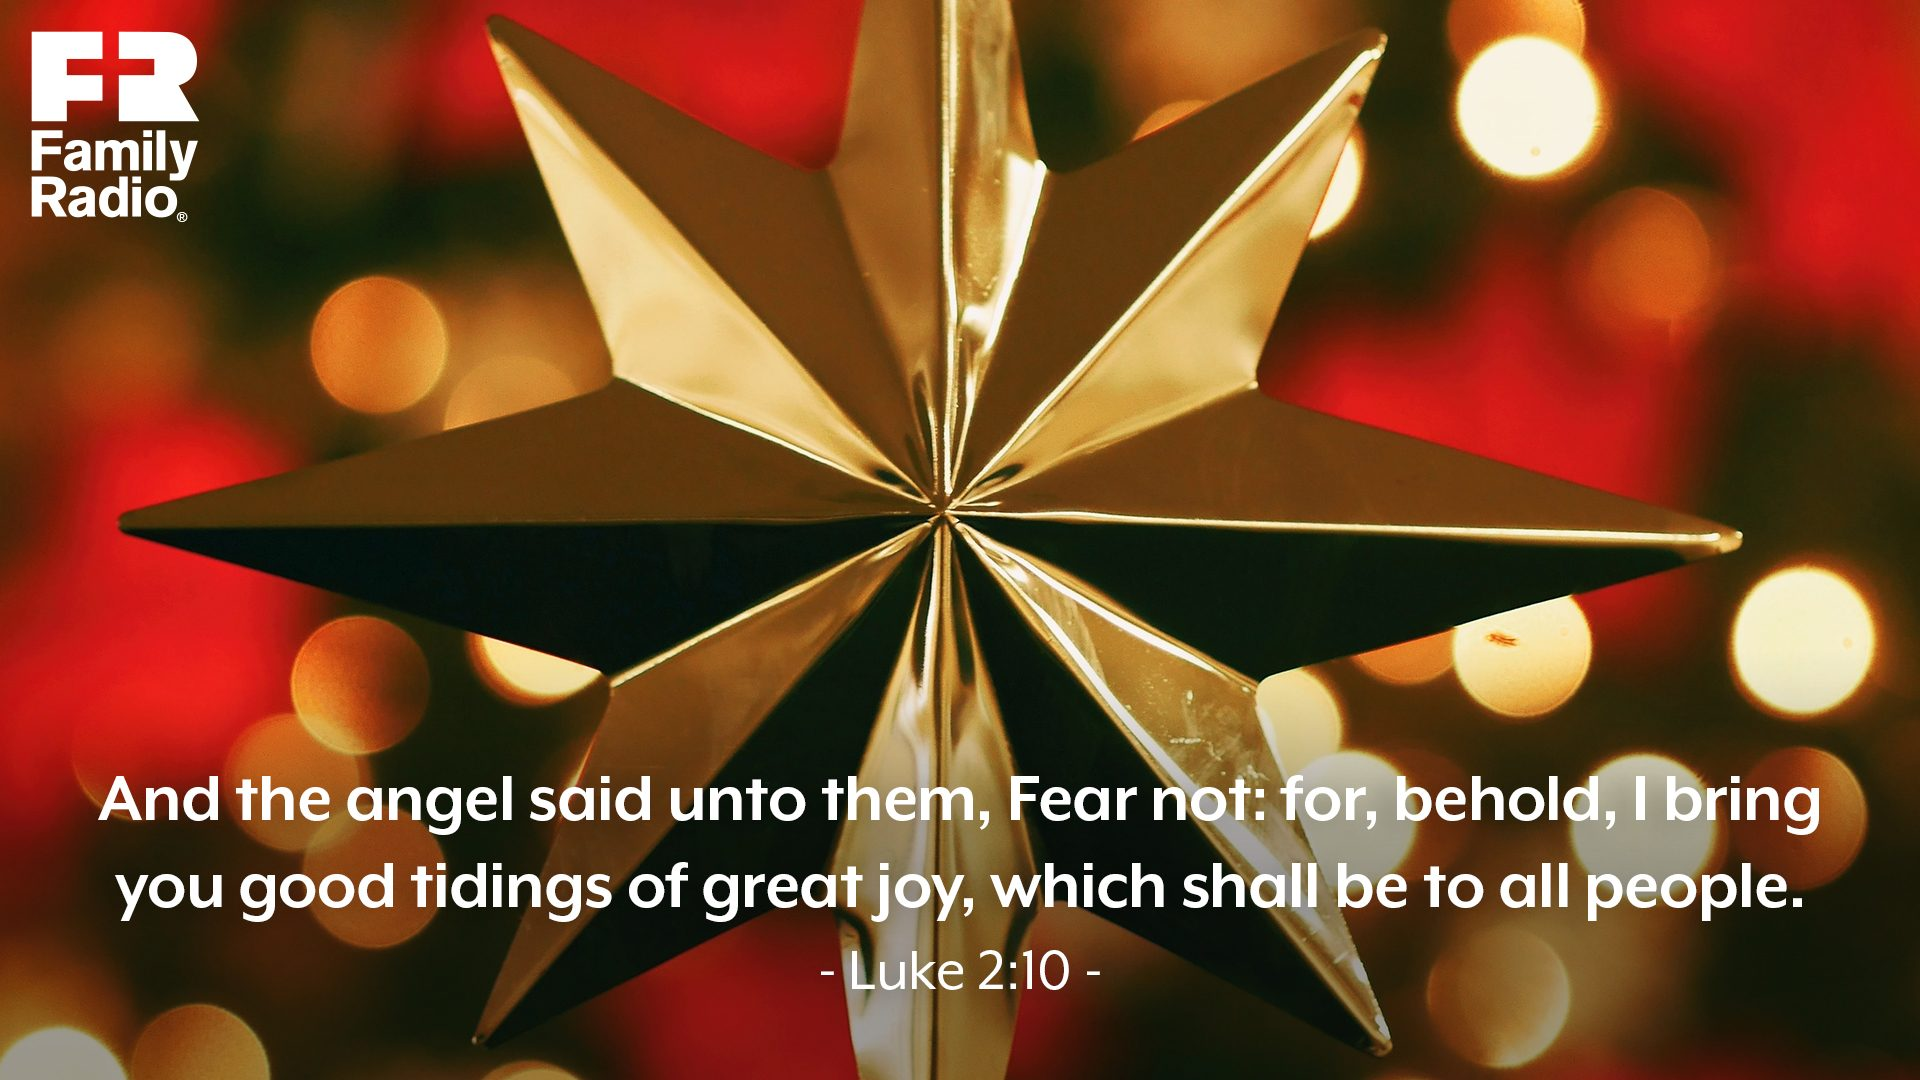 """And the angel said unto them, Fear not: for, behold, I bring you good tidings of great joy, which shall be to all people."""